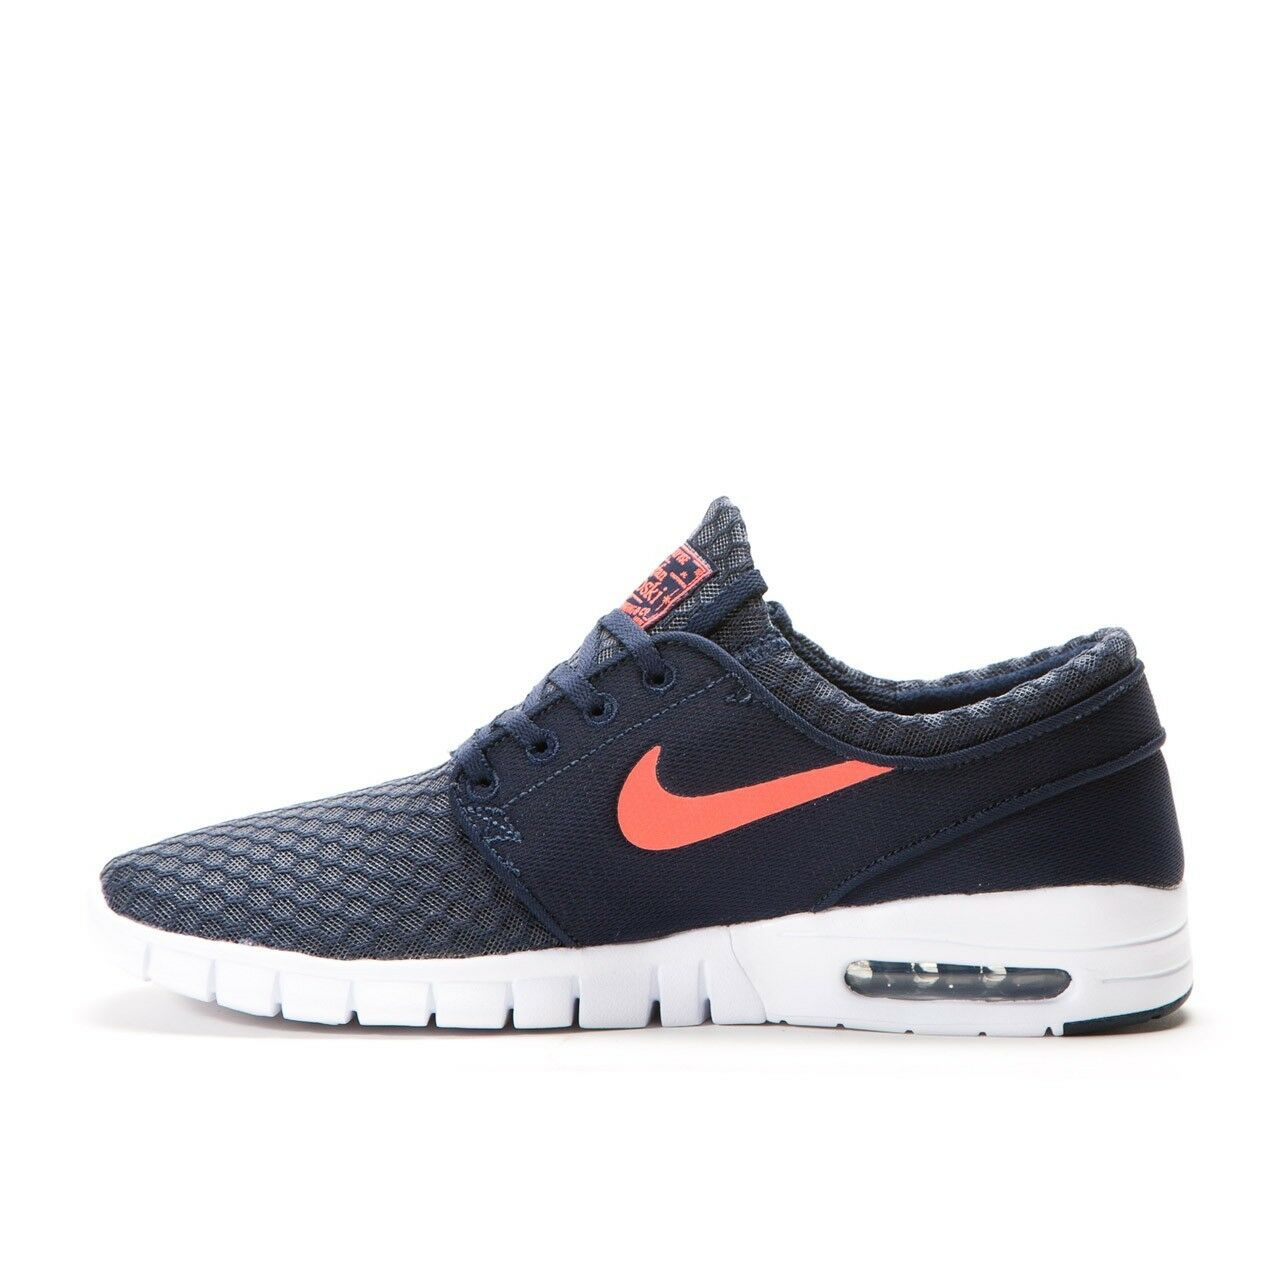 Nike Men's Stefan Janoski Max Skateboarding Shoes